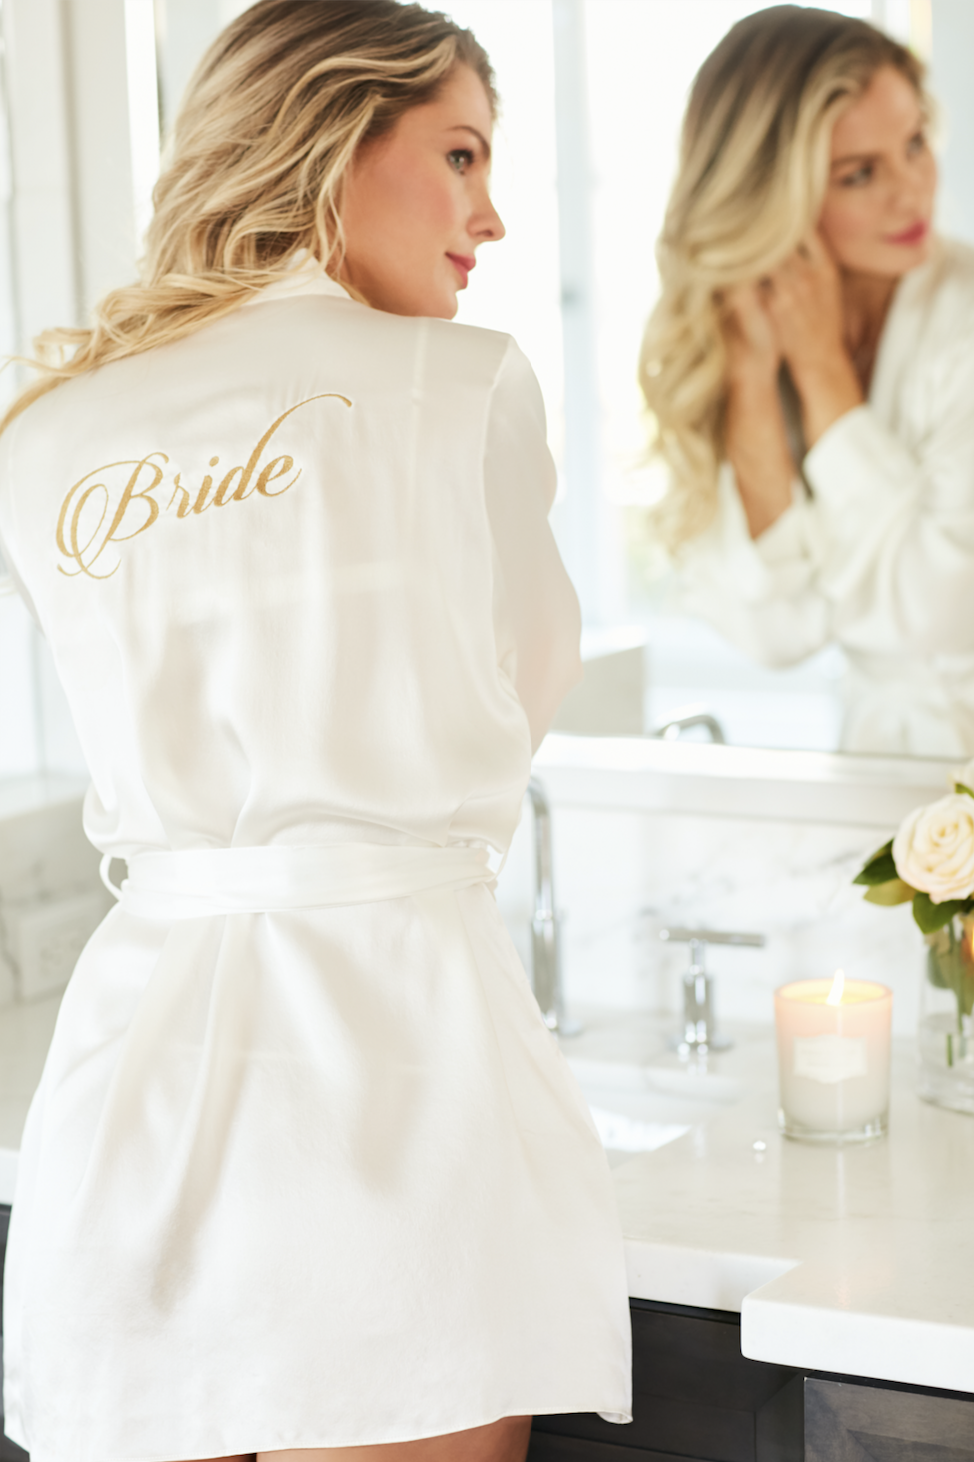 Bridal Meets Boudoir Beautiful Lingerie For The Bride And